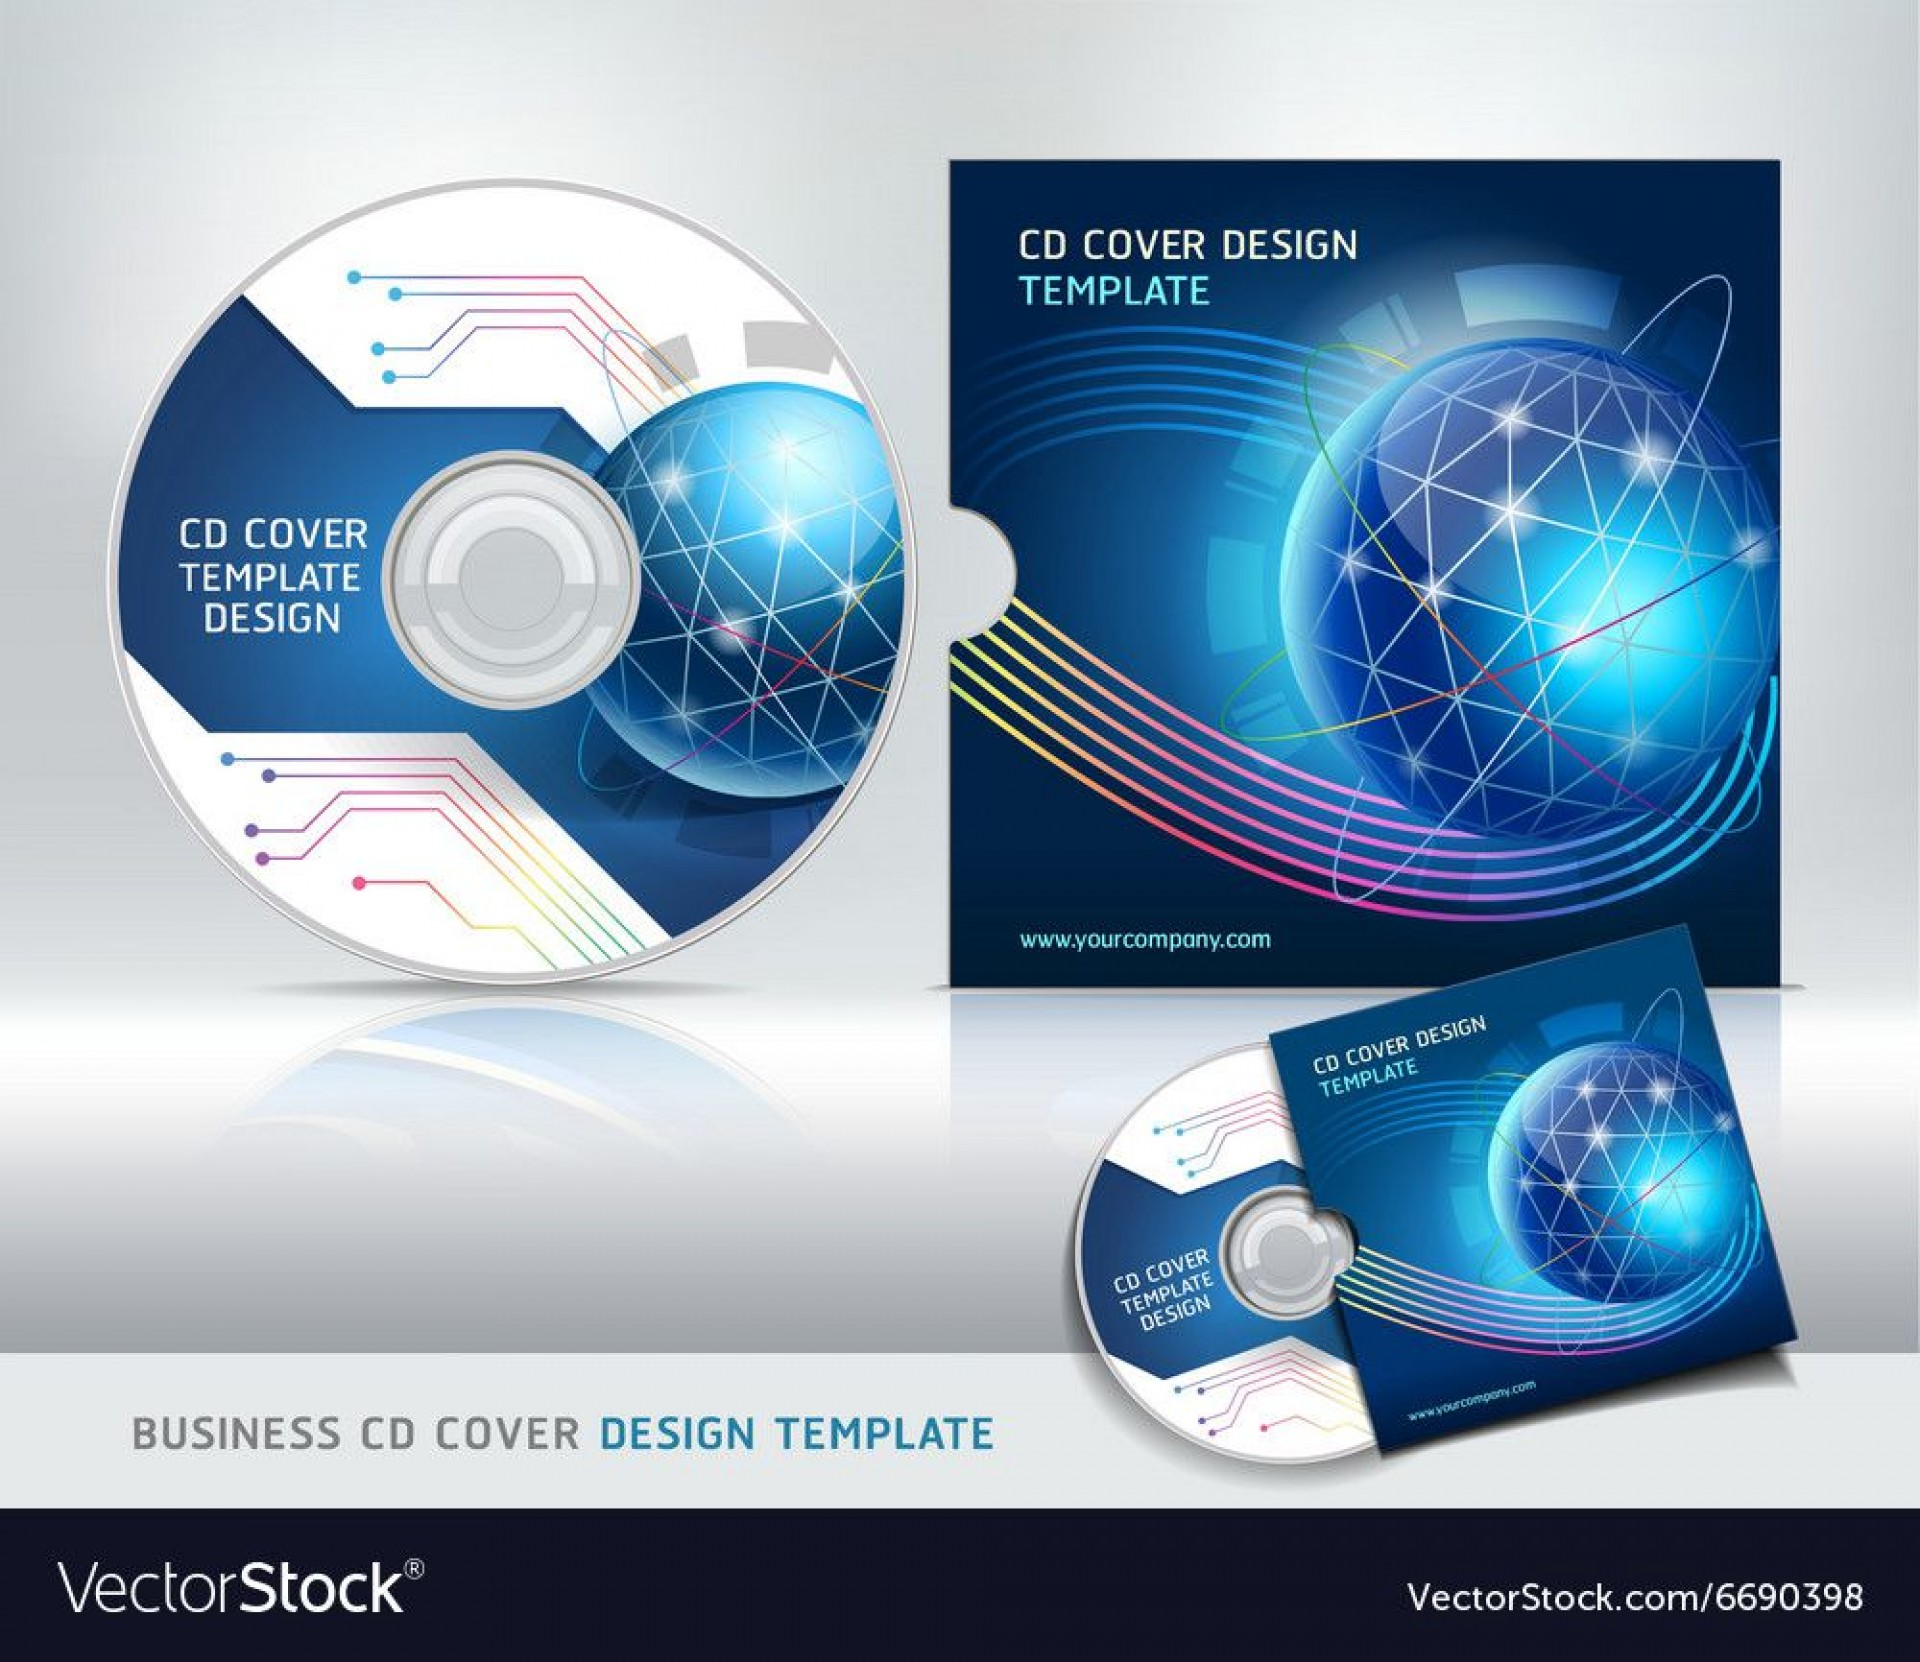 005 Fearsome Vector Cd Cover Design Template Free 1920